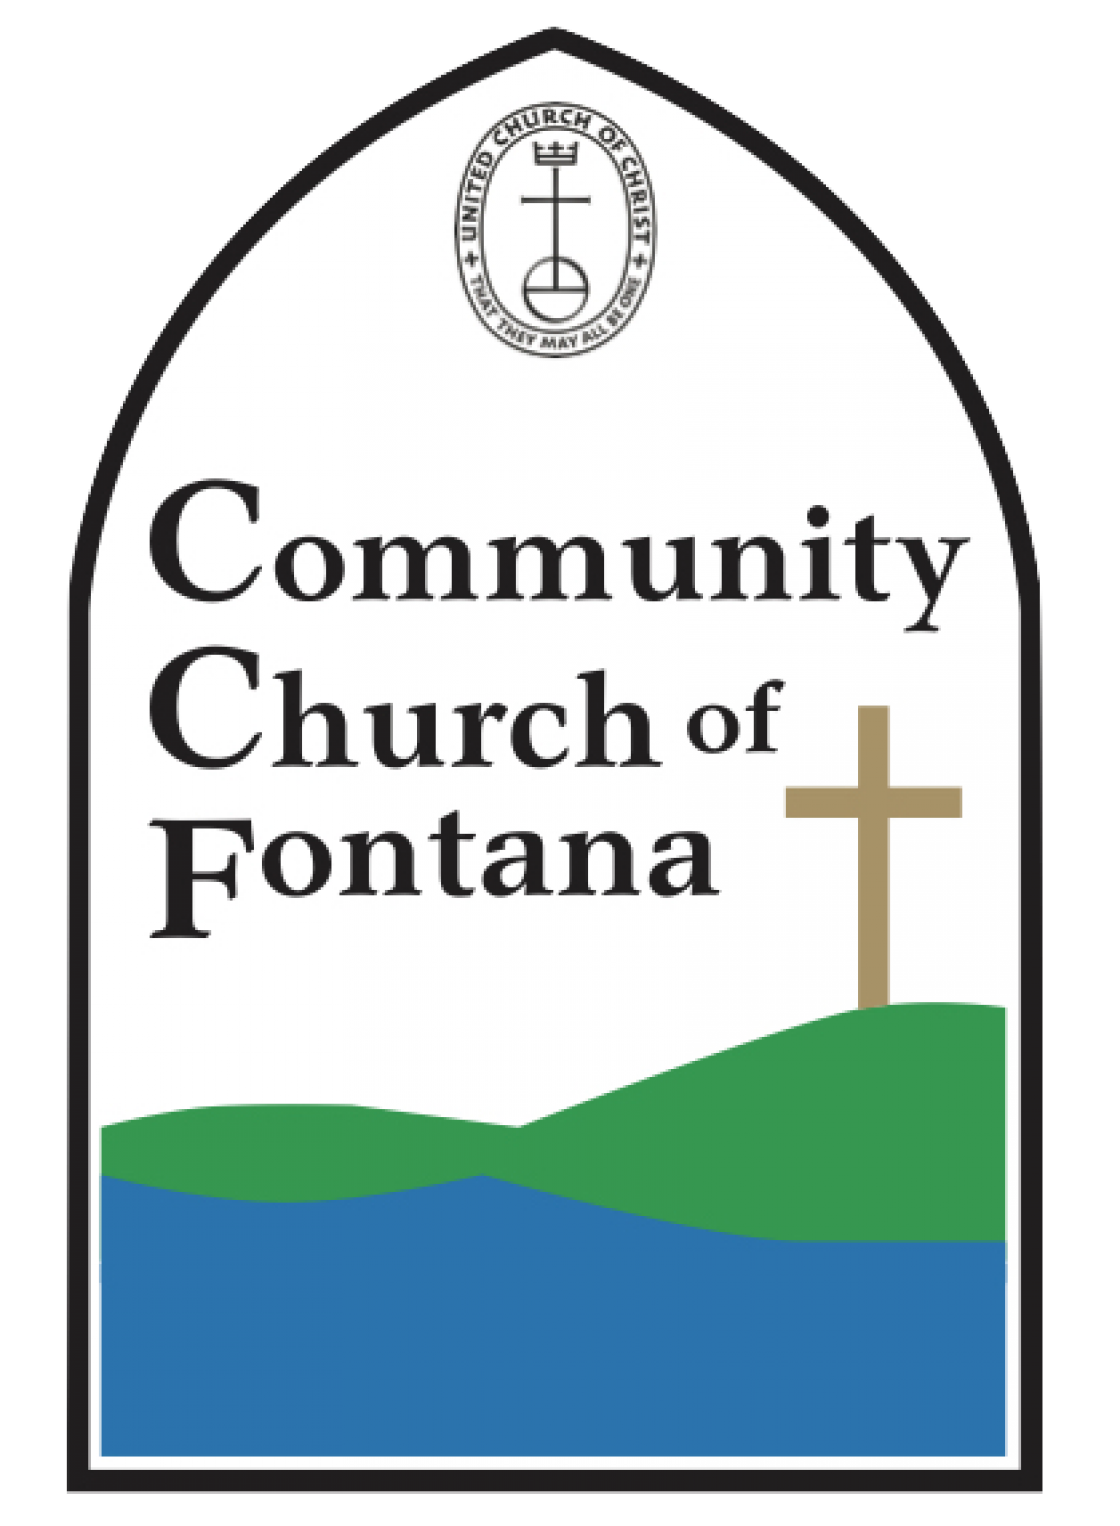 Community Church of Fontana